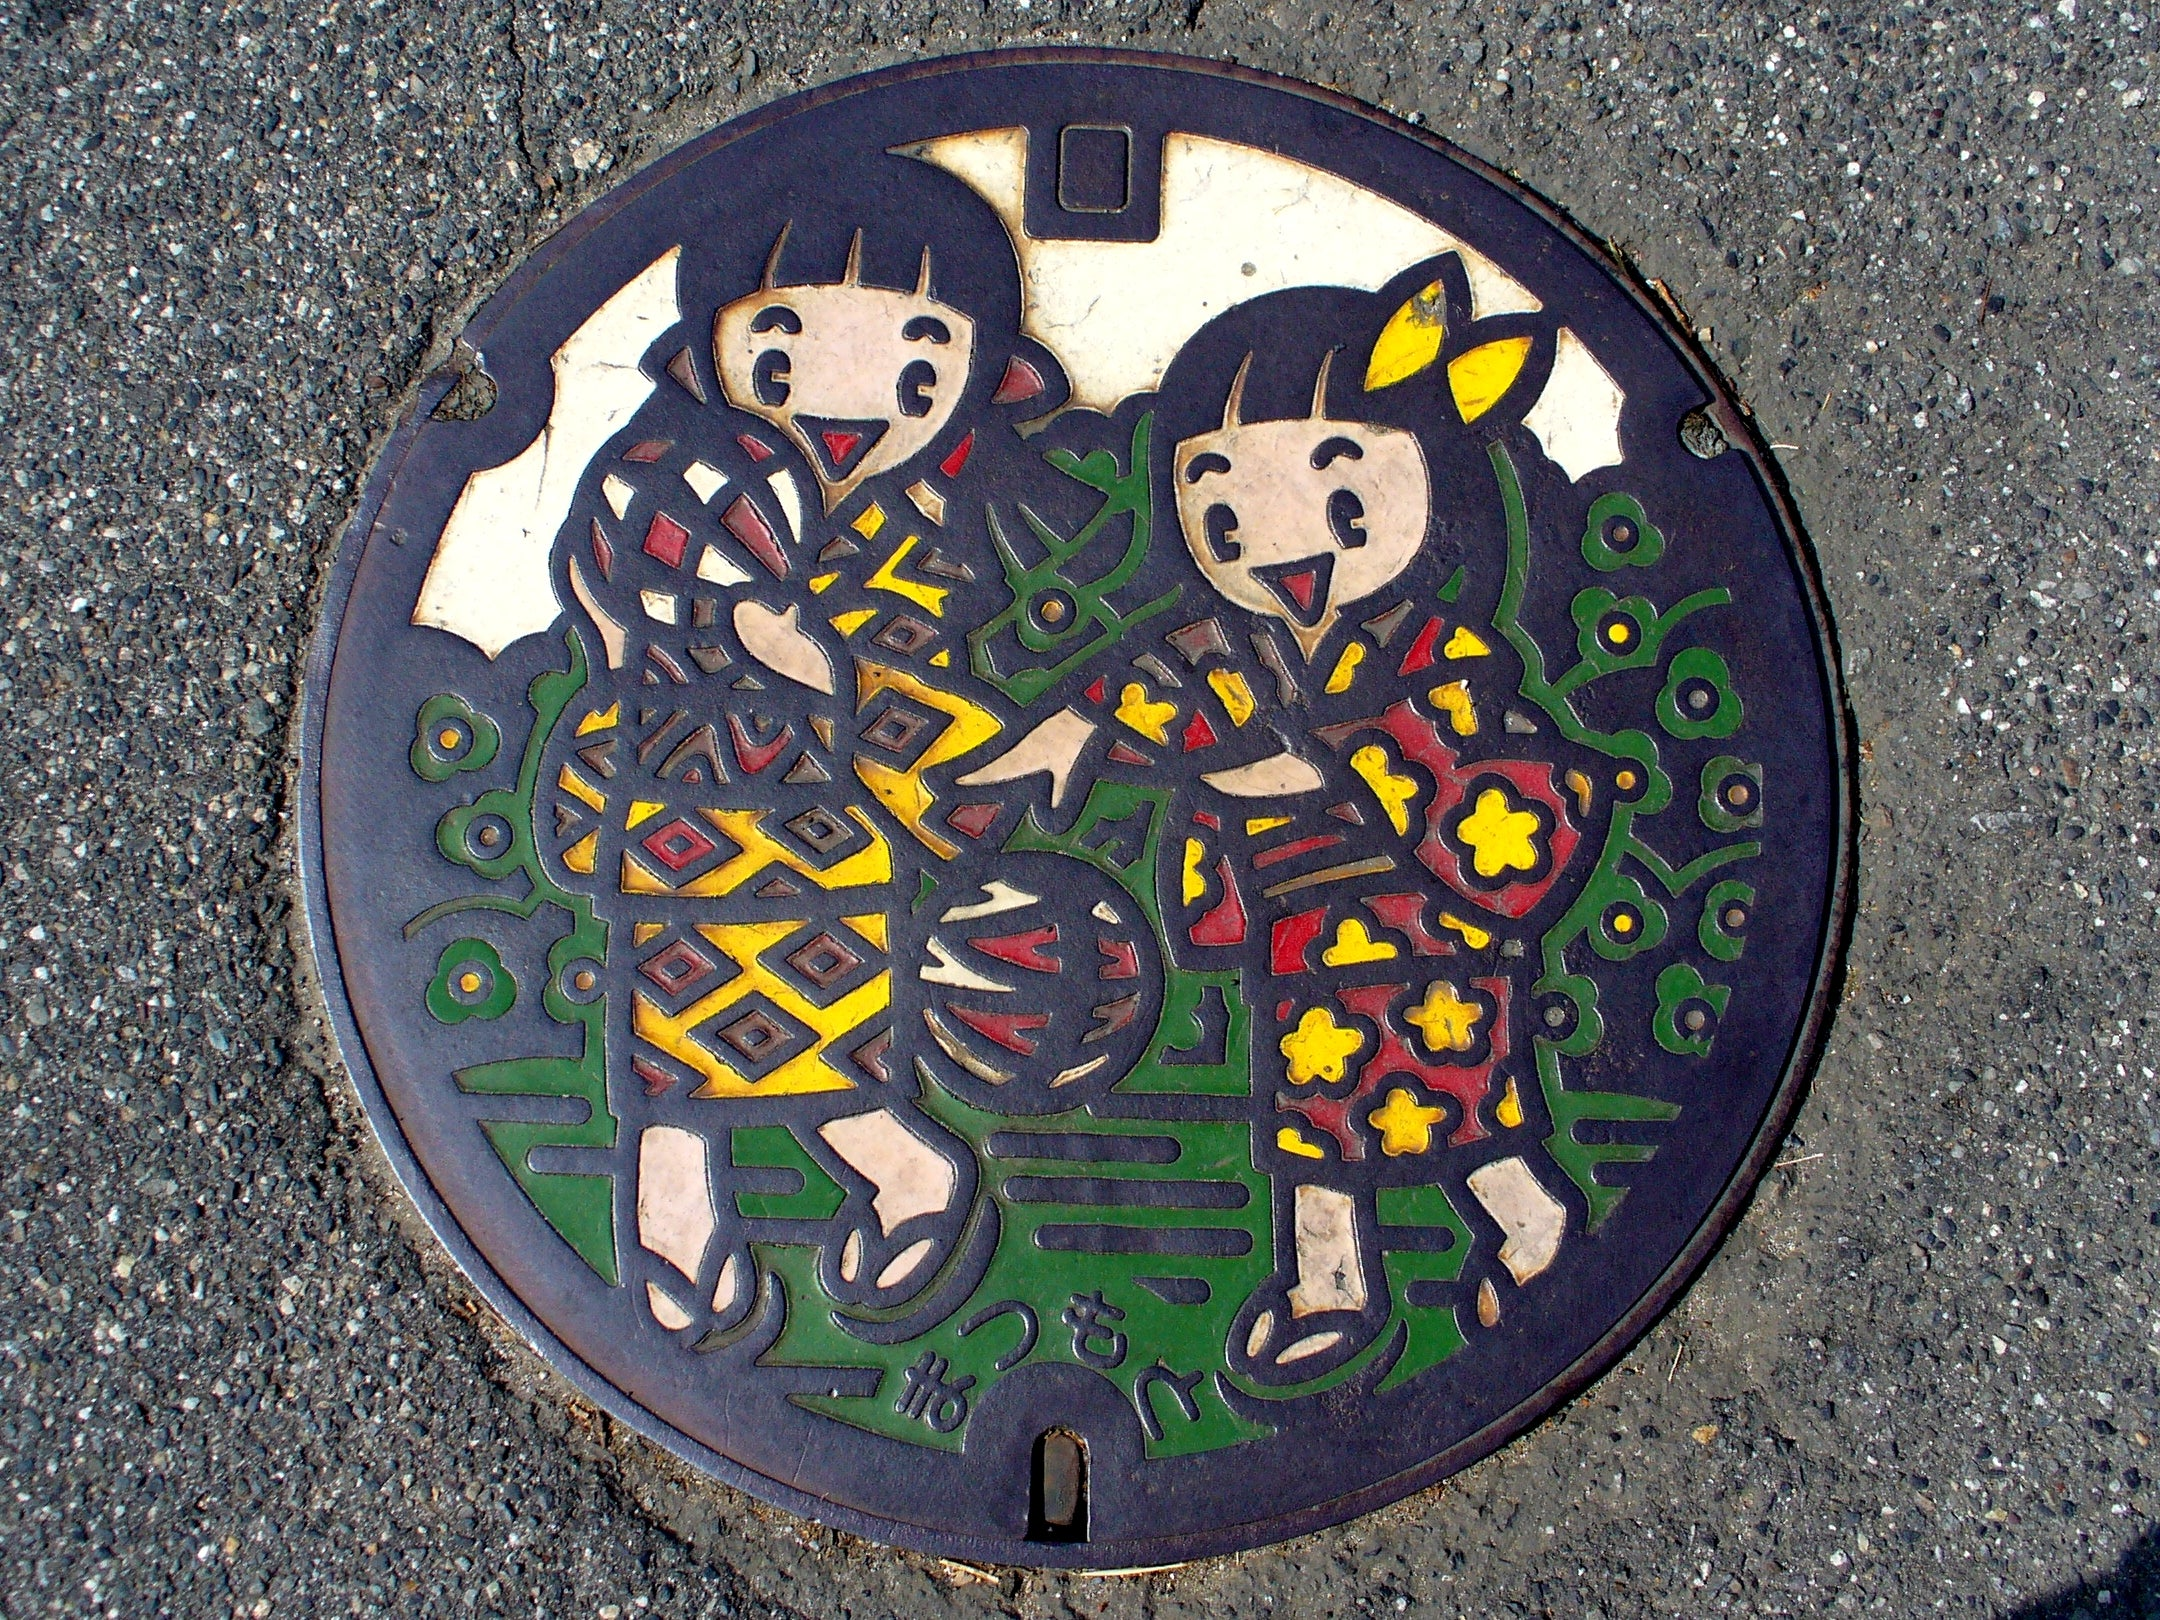 The Manhole Covers in Japan Are Absolutely Beautiful